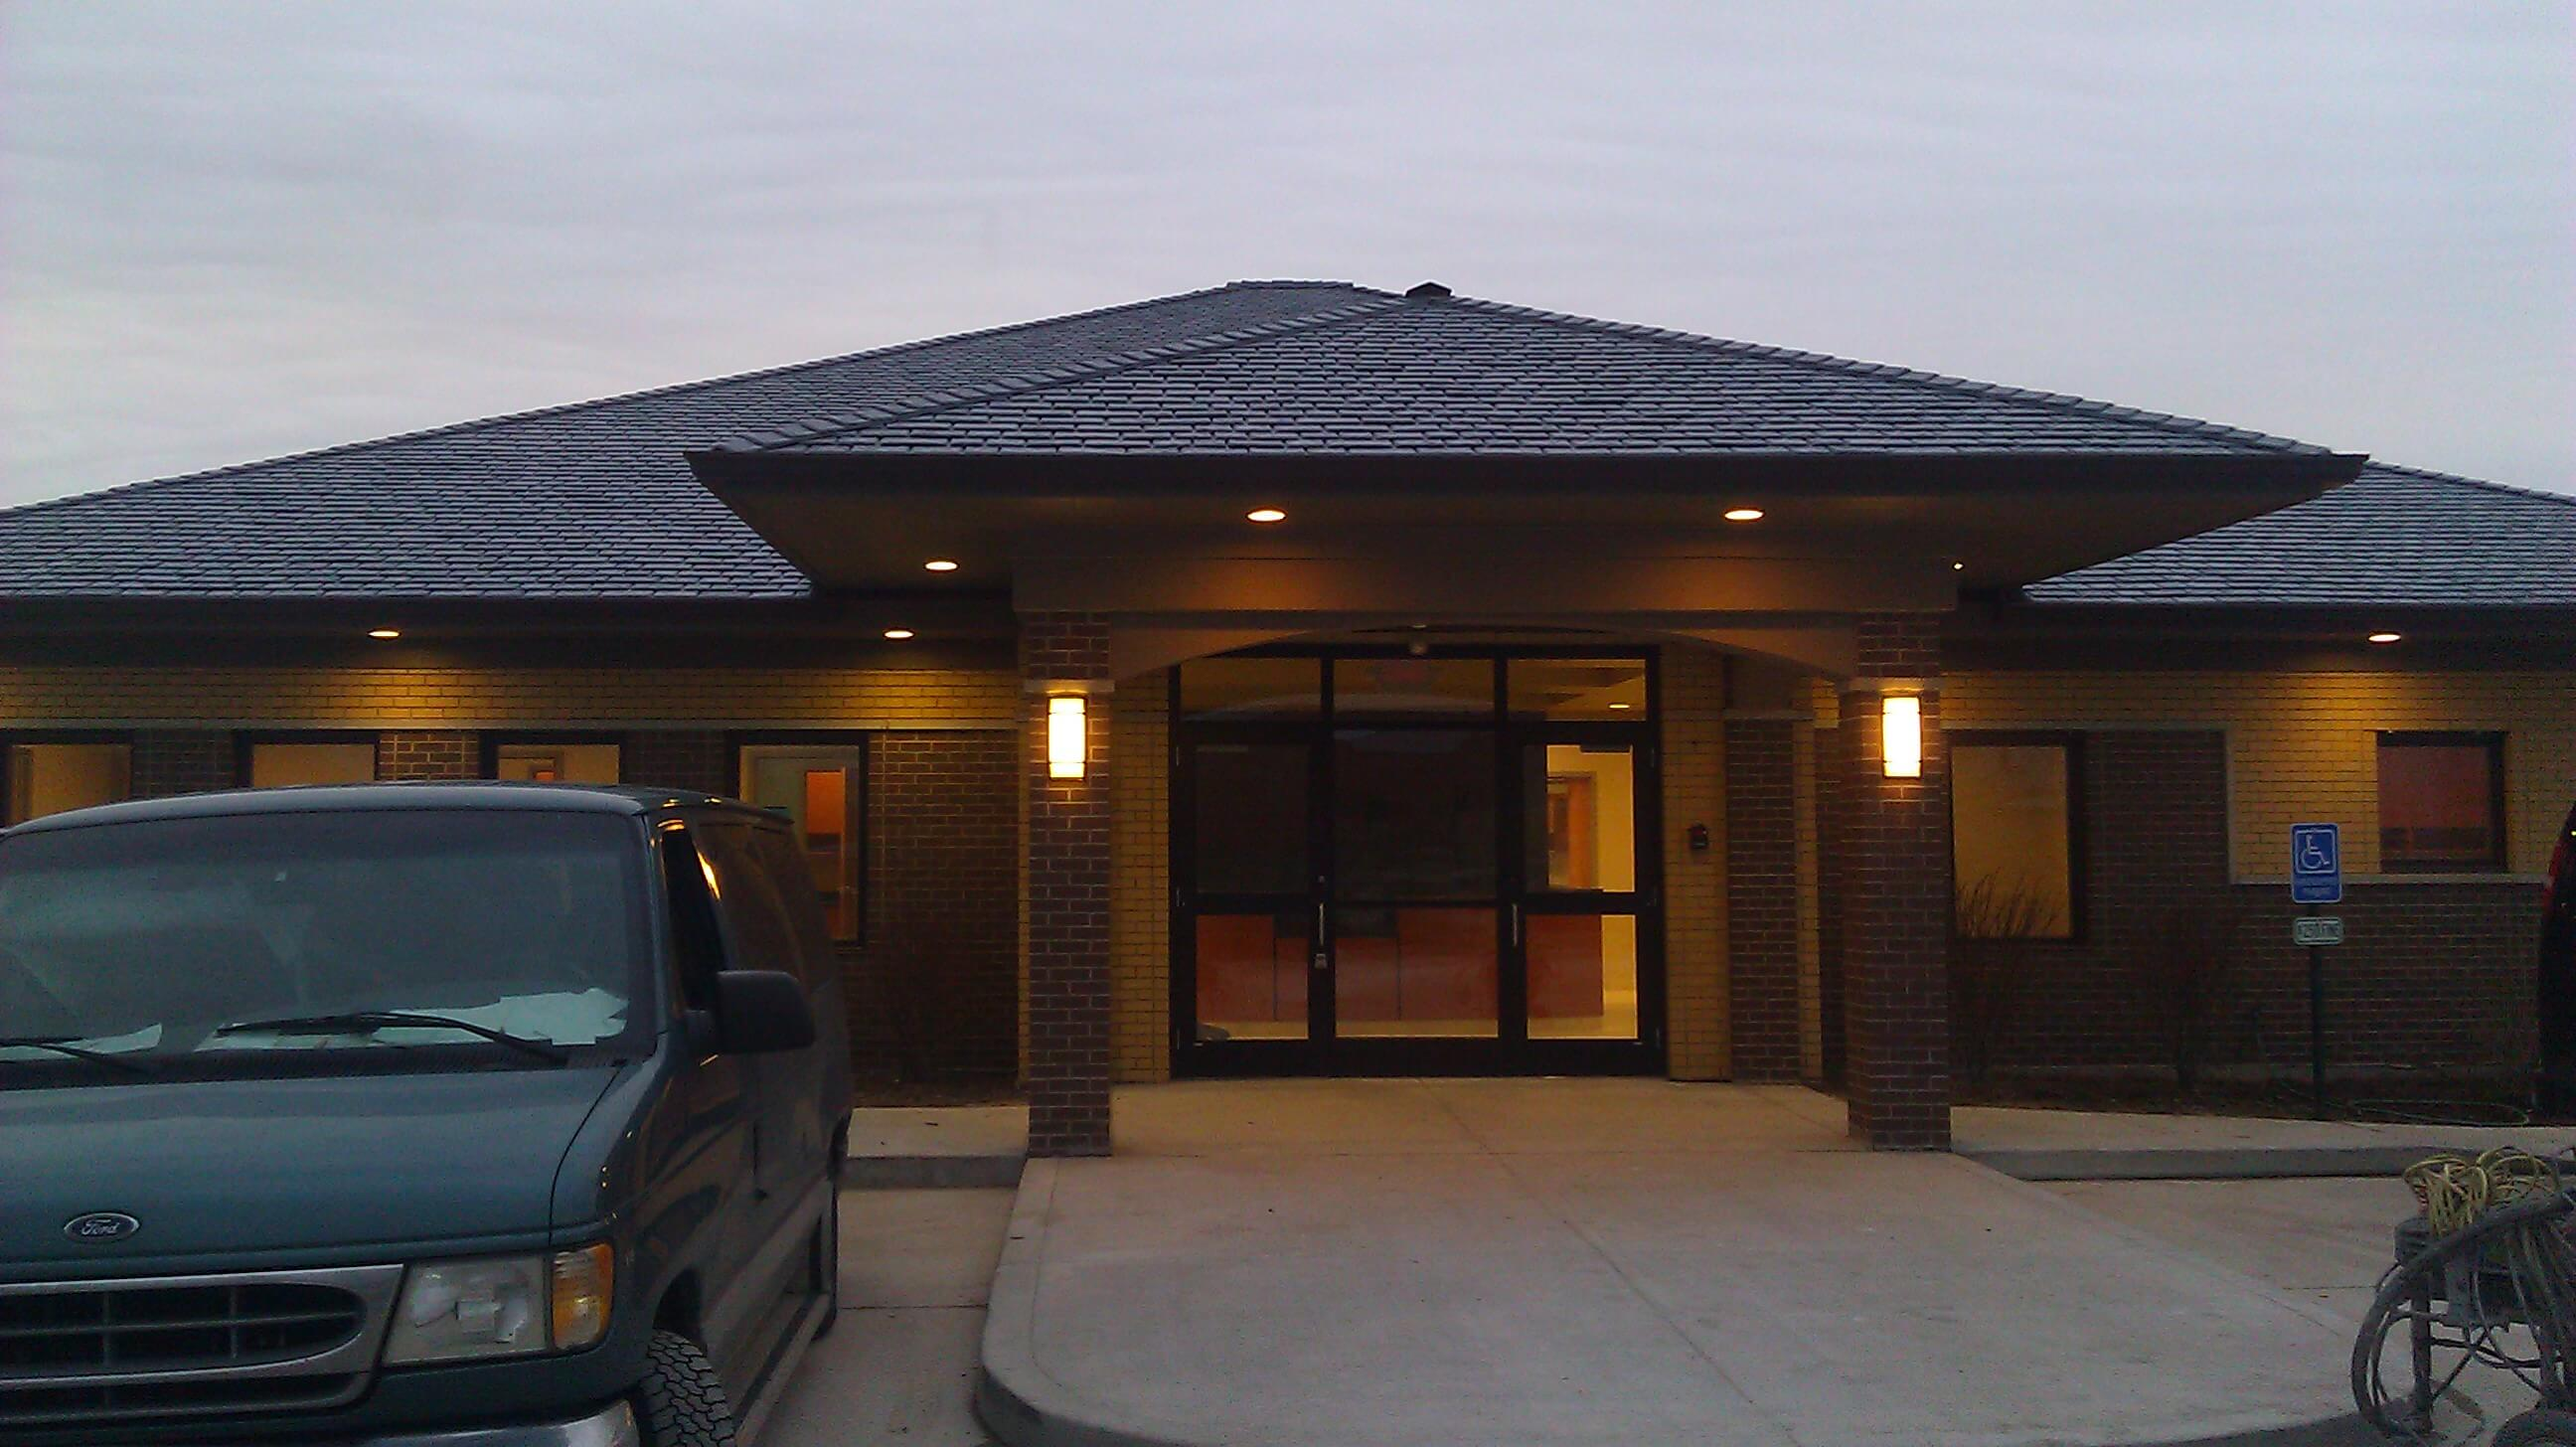 Randall Road Animal Hospital, Crystal Lake, IL